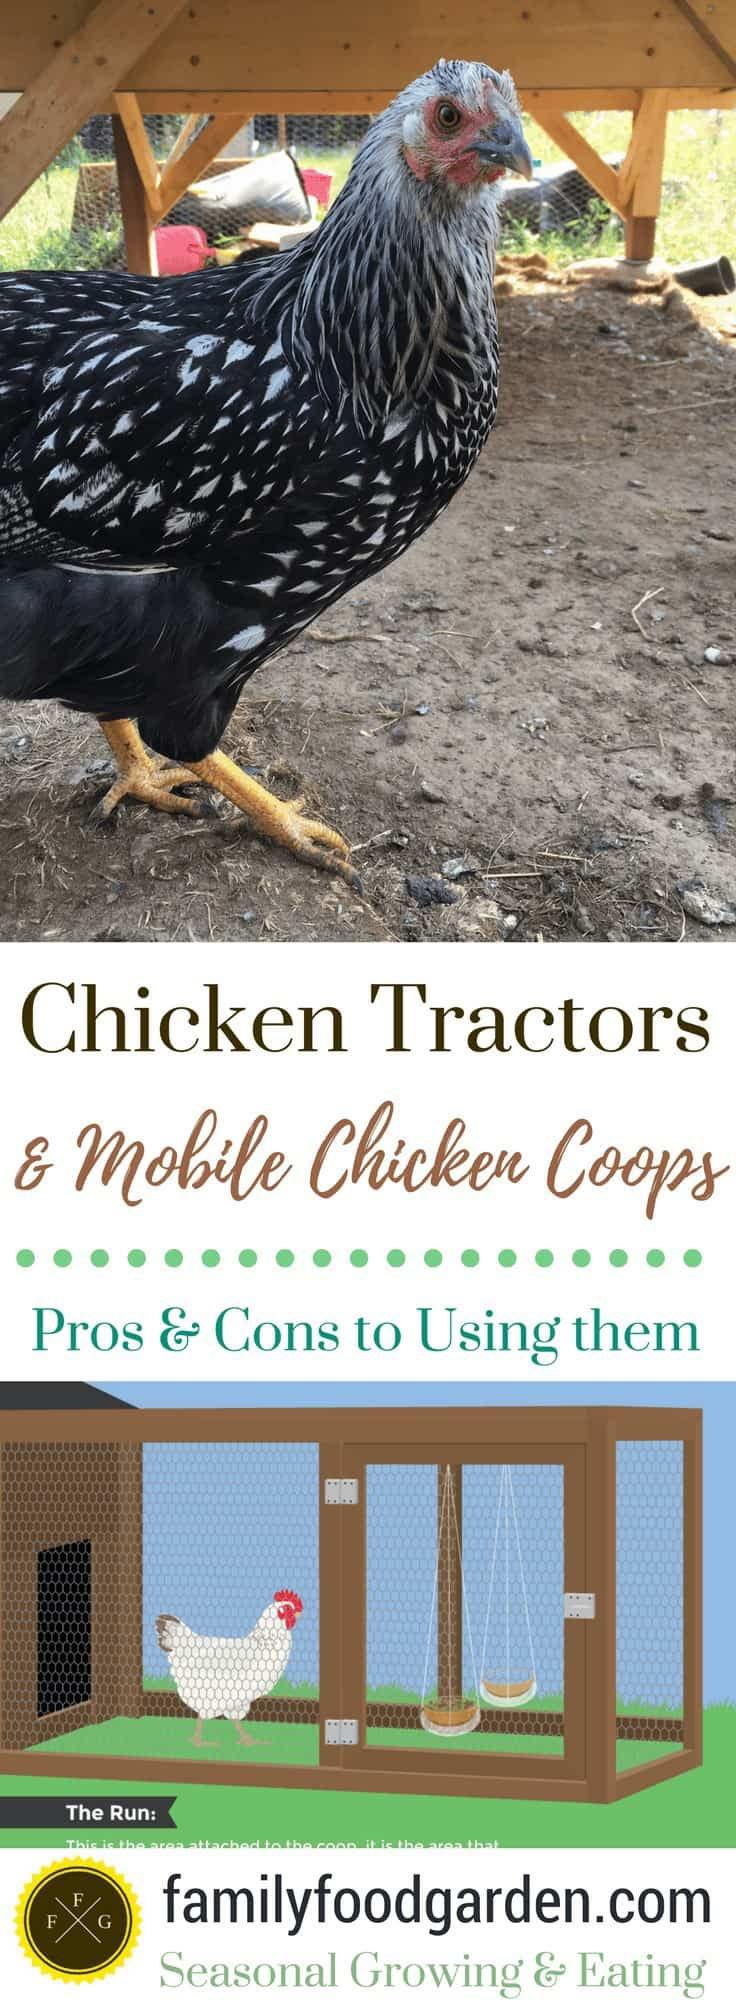 Chicken Tractors & Mobile Chicken Coops